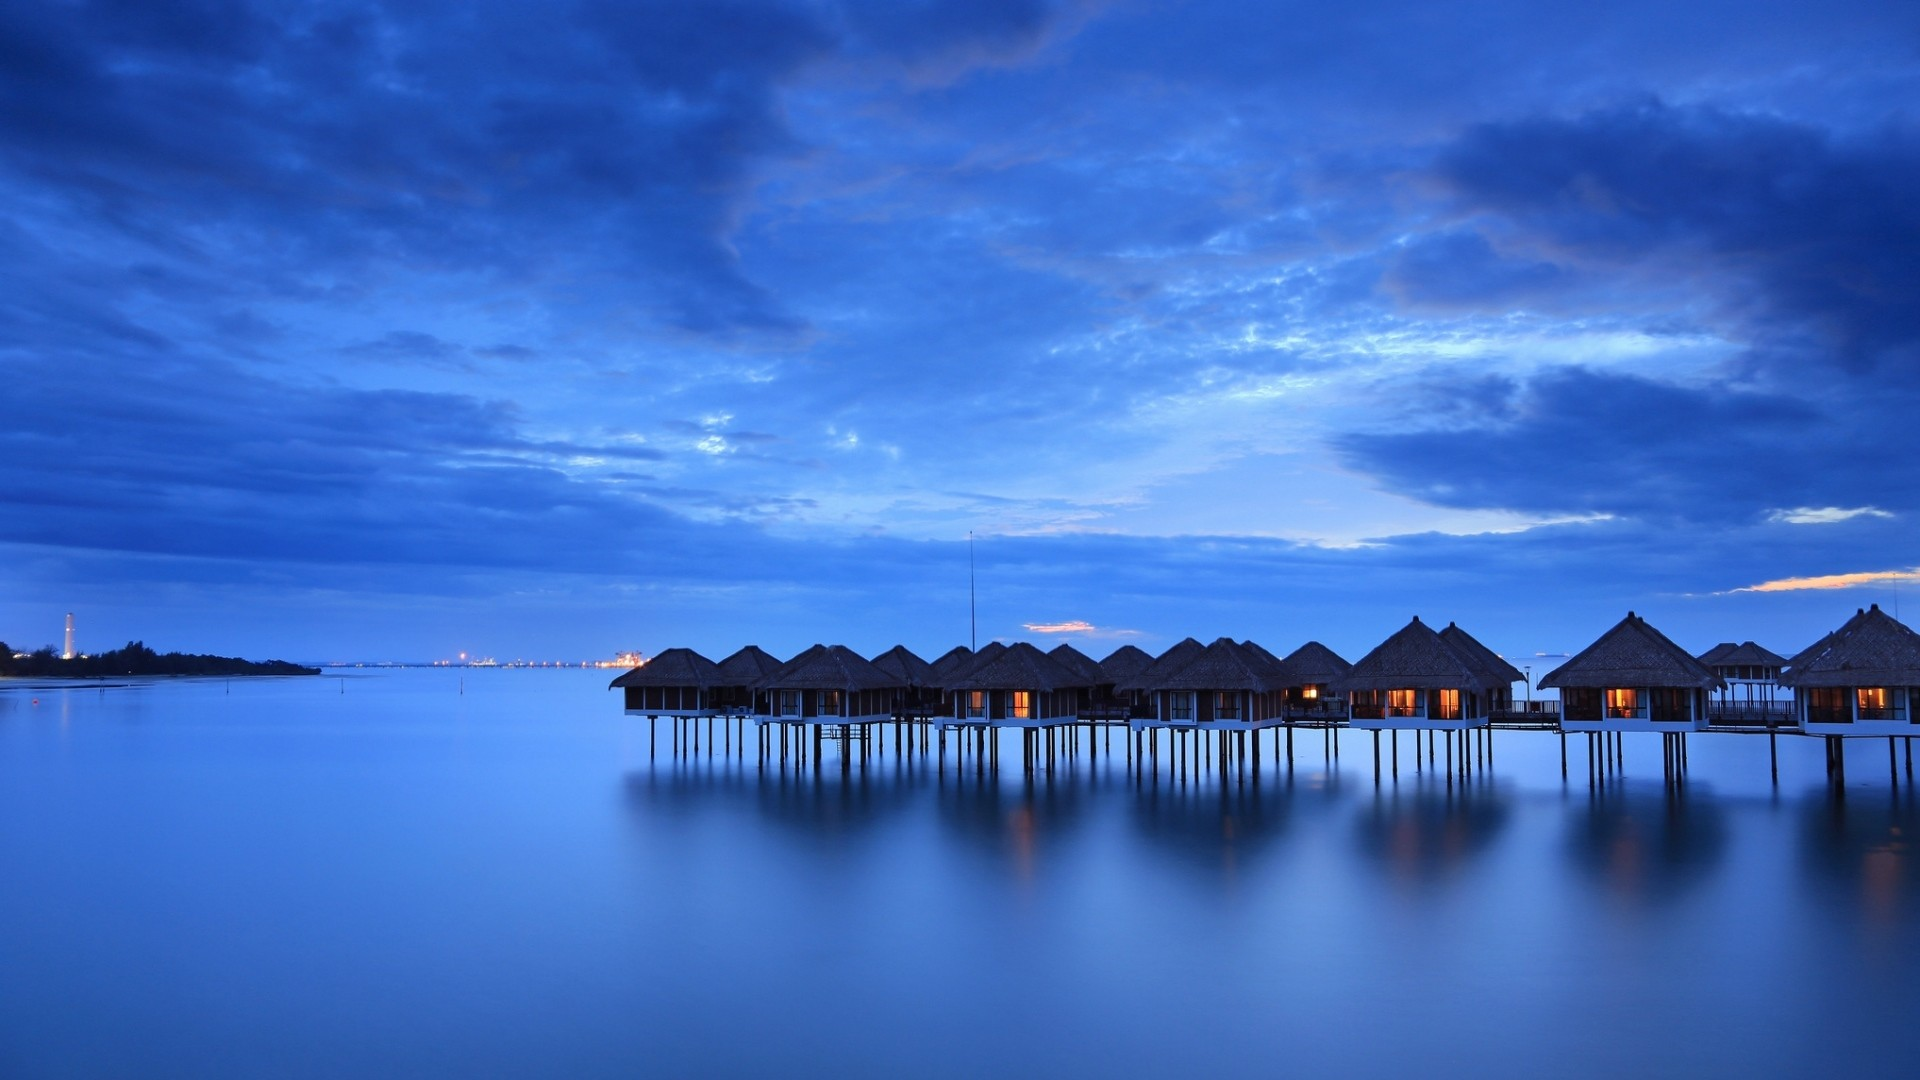 Calming Wallpaper Background 70 Images